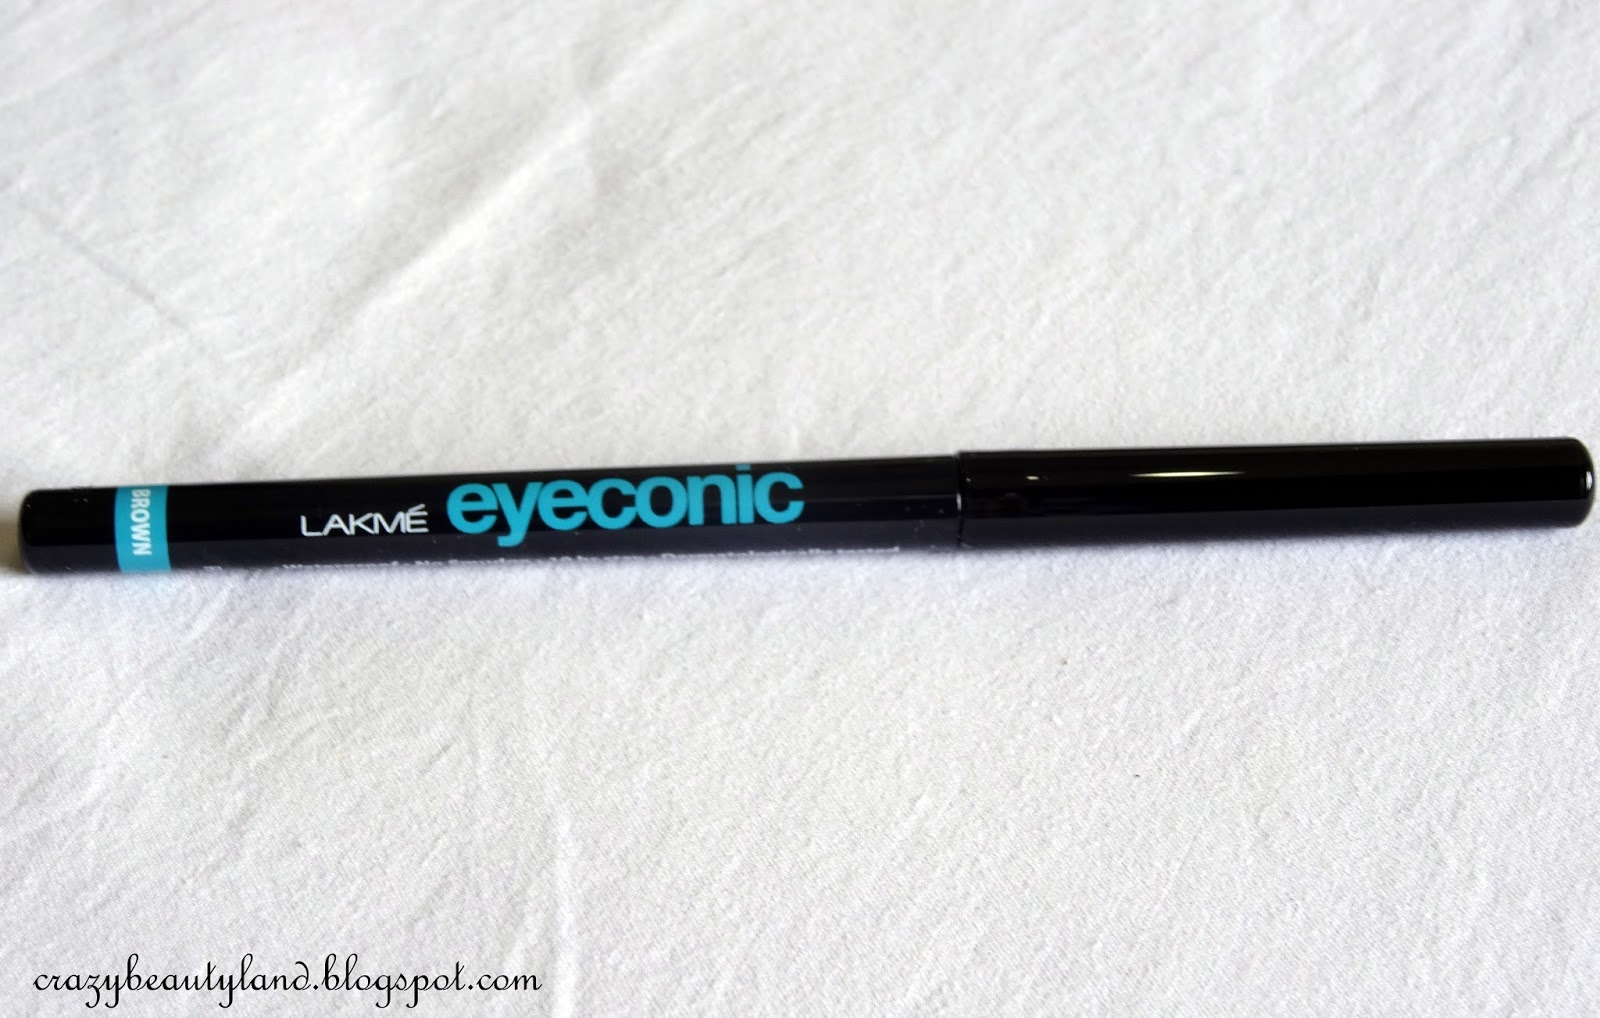 Lakme Eyeconic 10 Hr Kajal in Brown- Review,Price, Swatches, Photos, EOTD, where to online, how to use